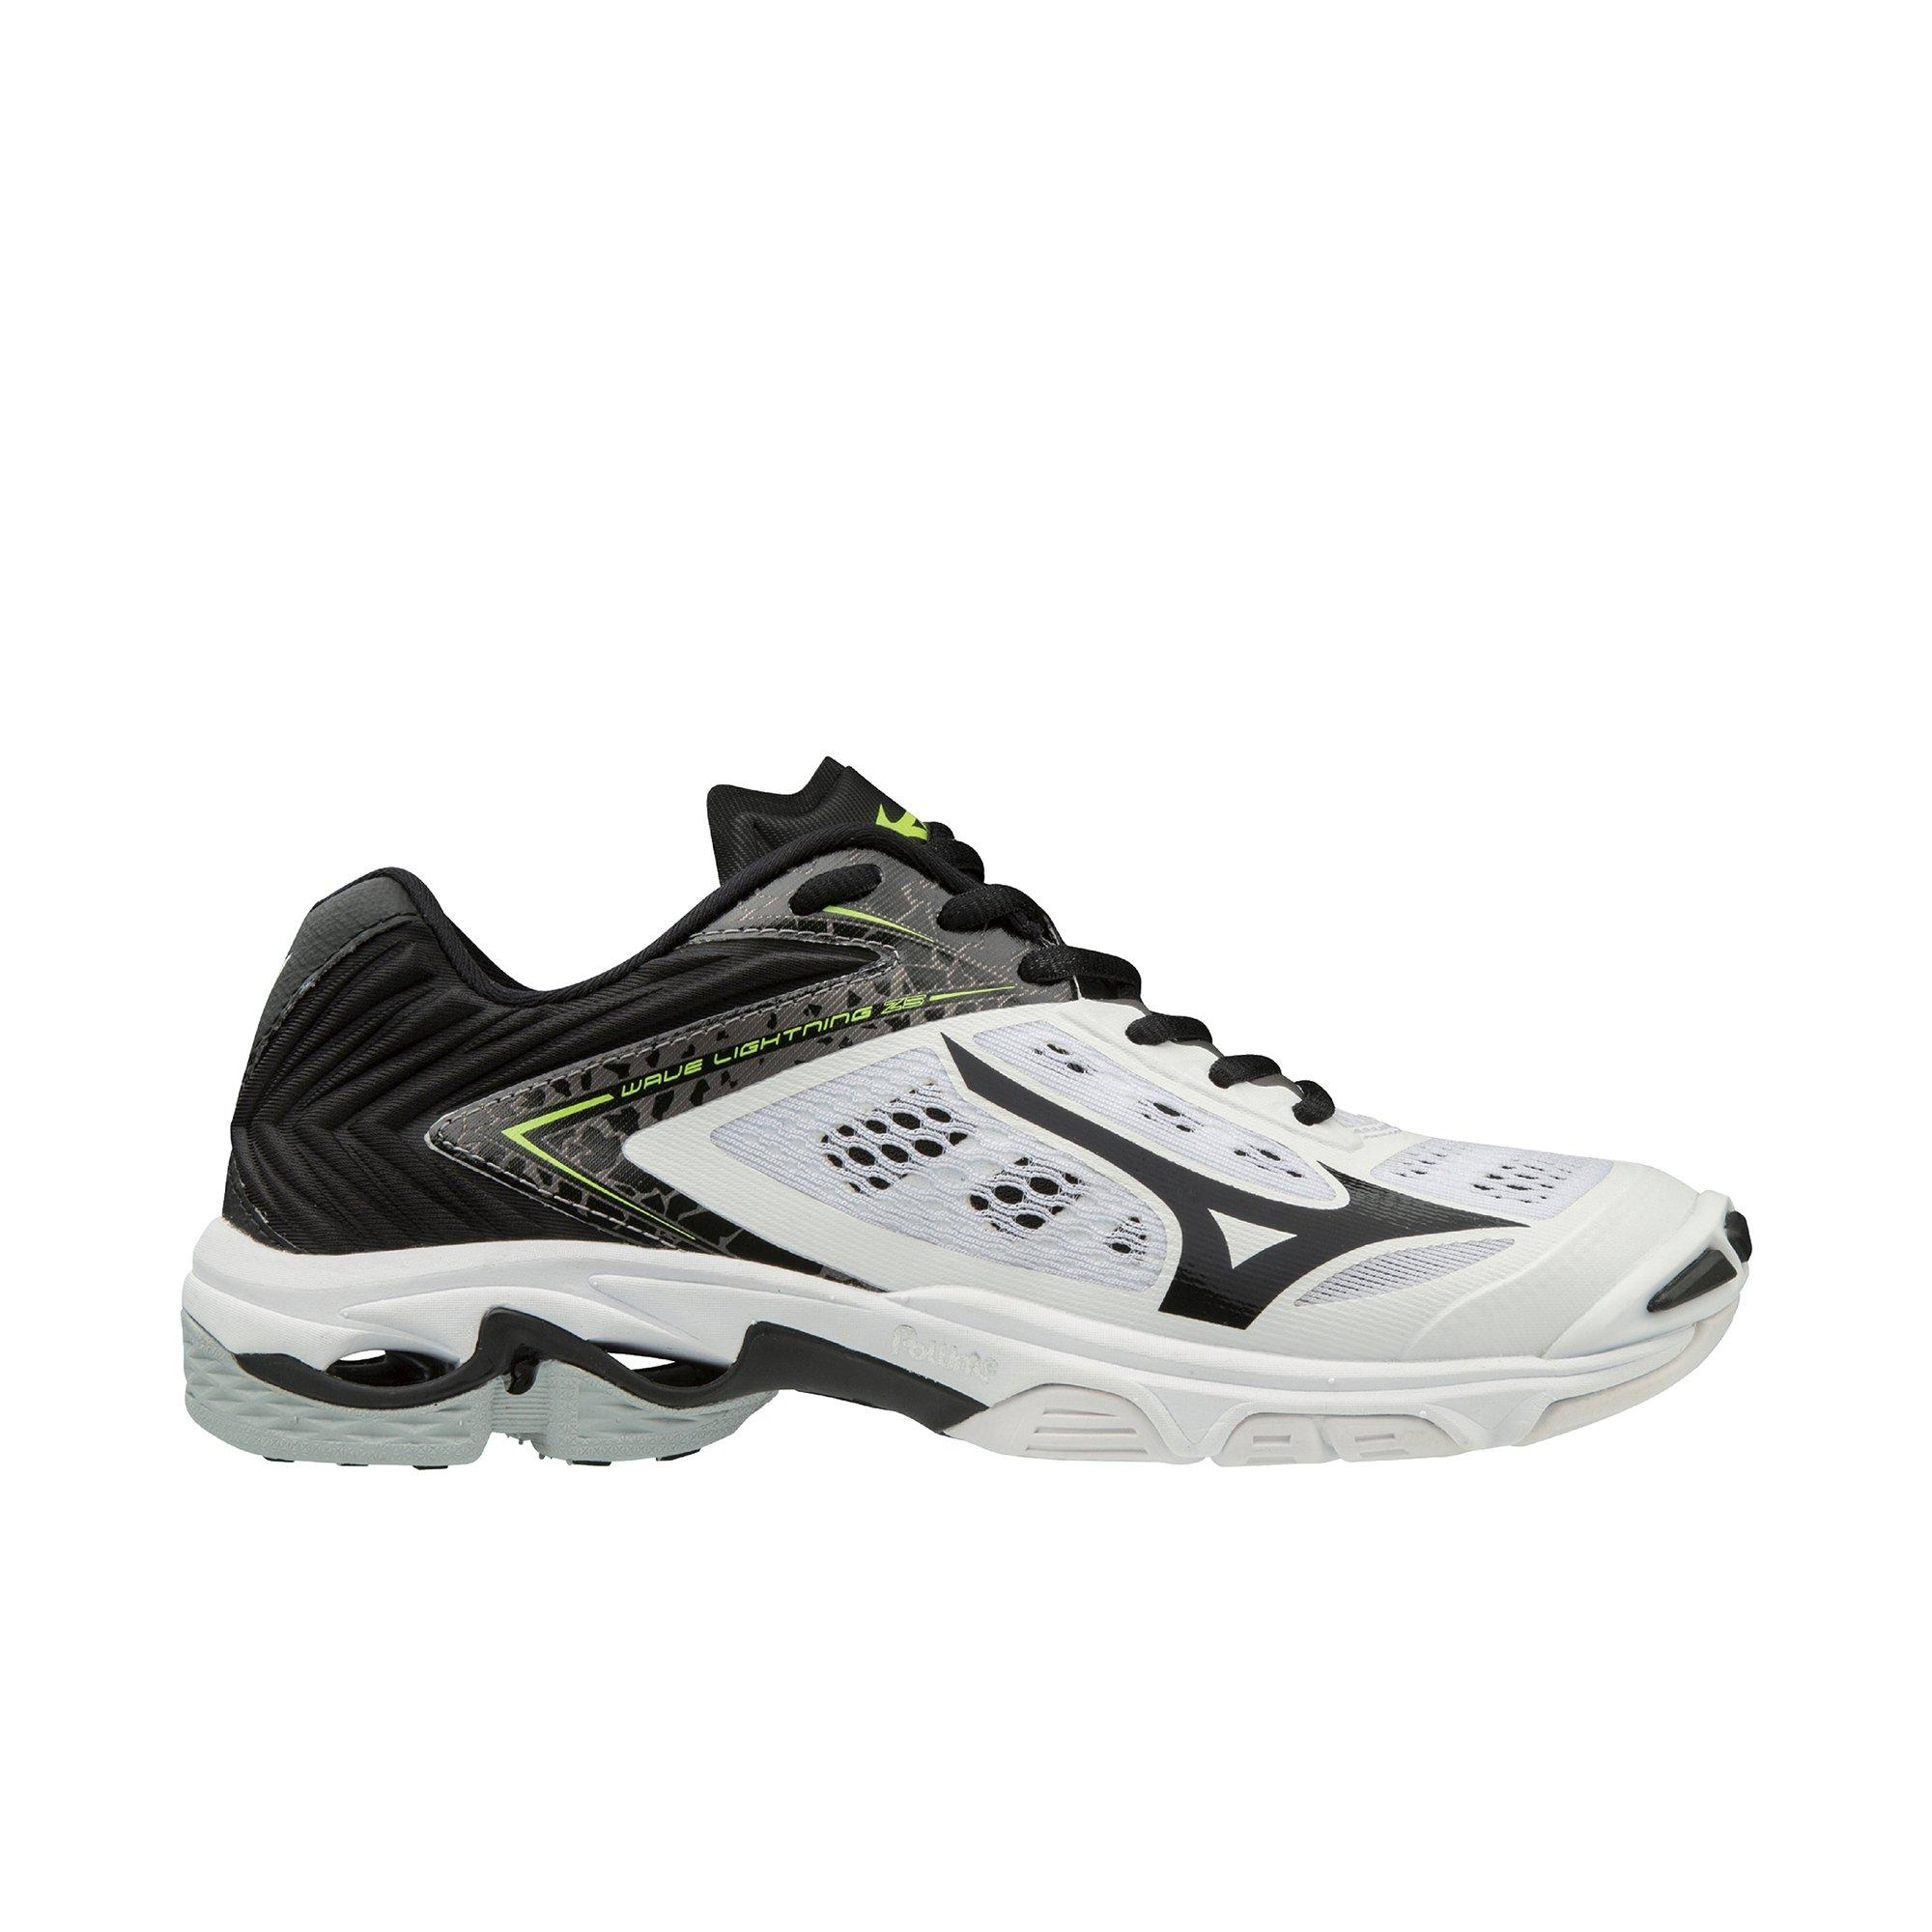 mizuno womens volleyball shoes size 8 x 1 nm kick rate today